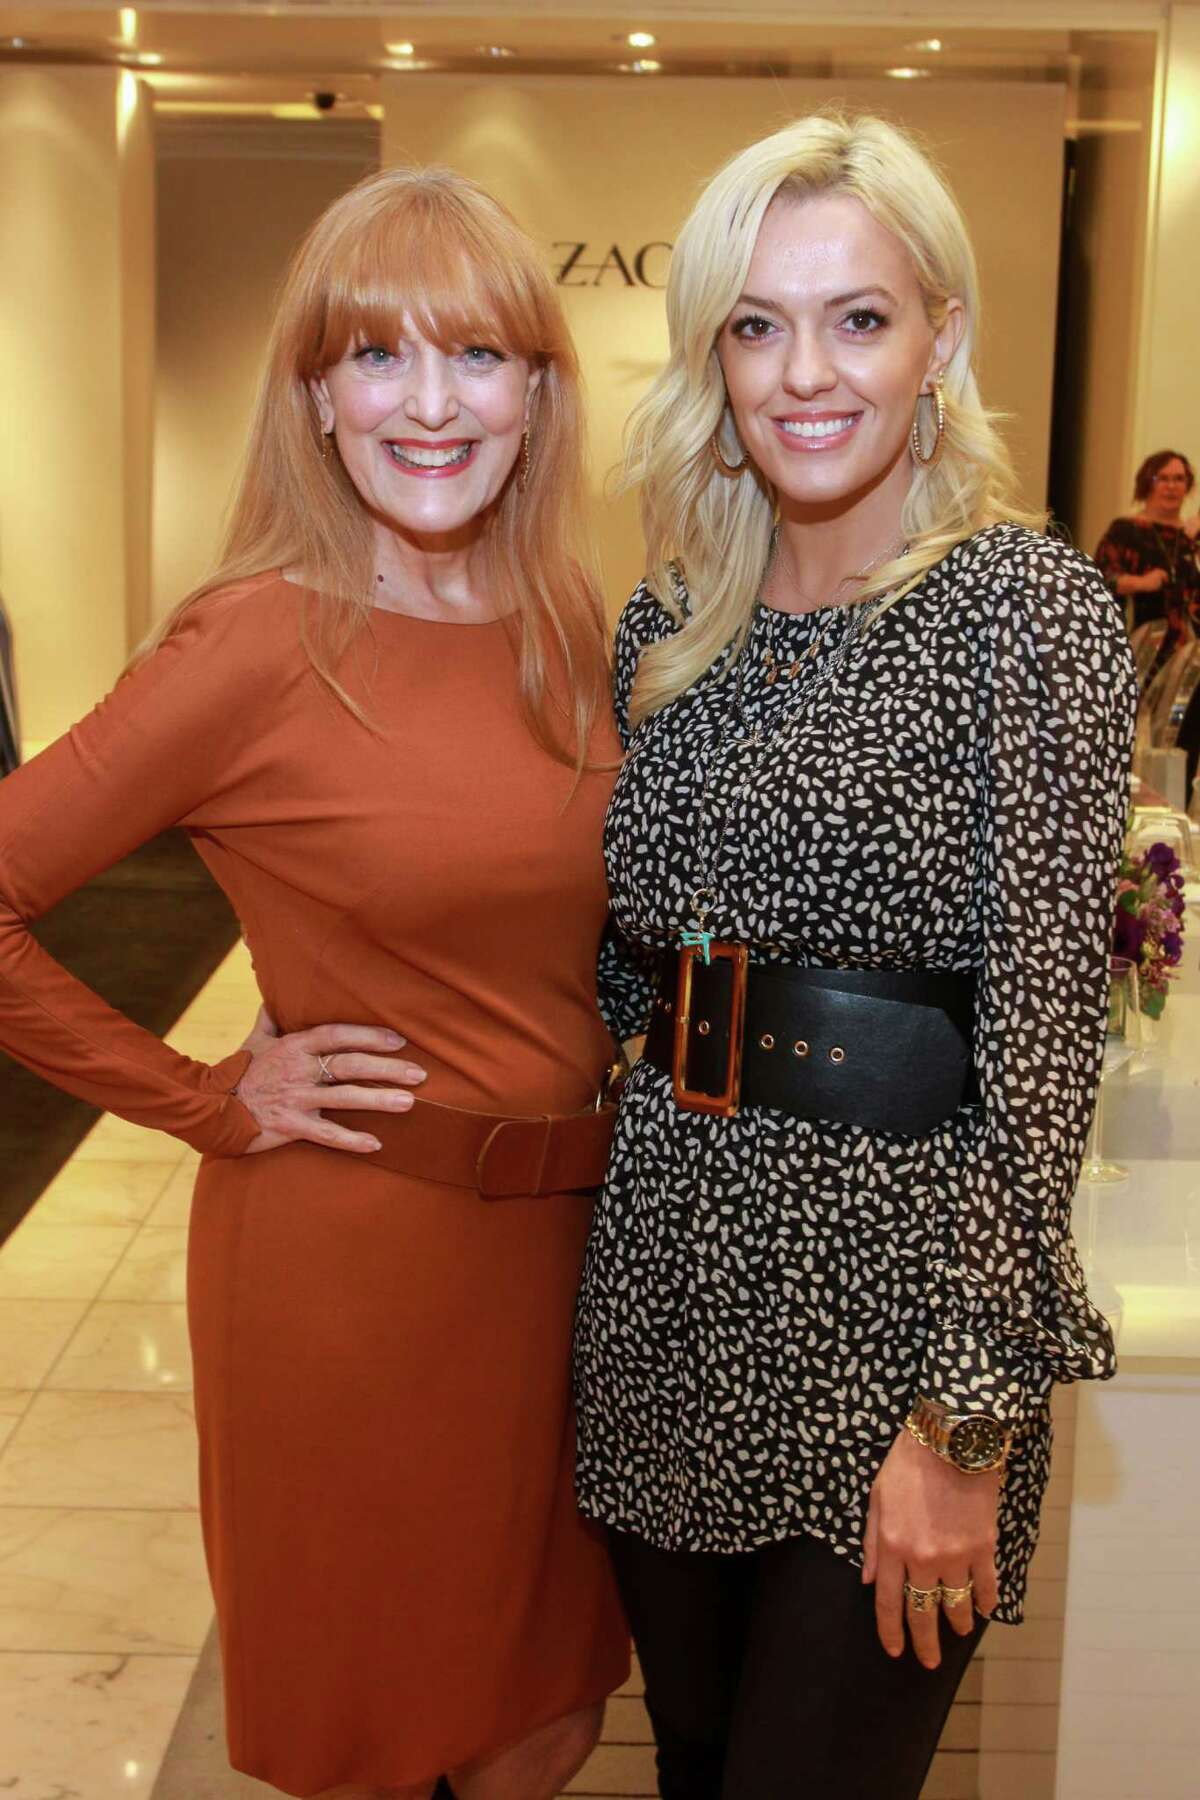 Gracie Cavnar, left, and Zana Ibishi at the Zac Posen event at Neiman Marcus in Houston on October 23, 2019.